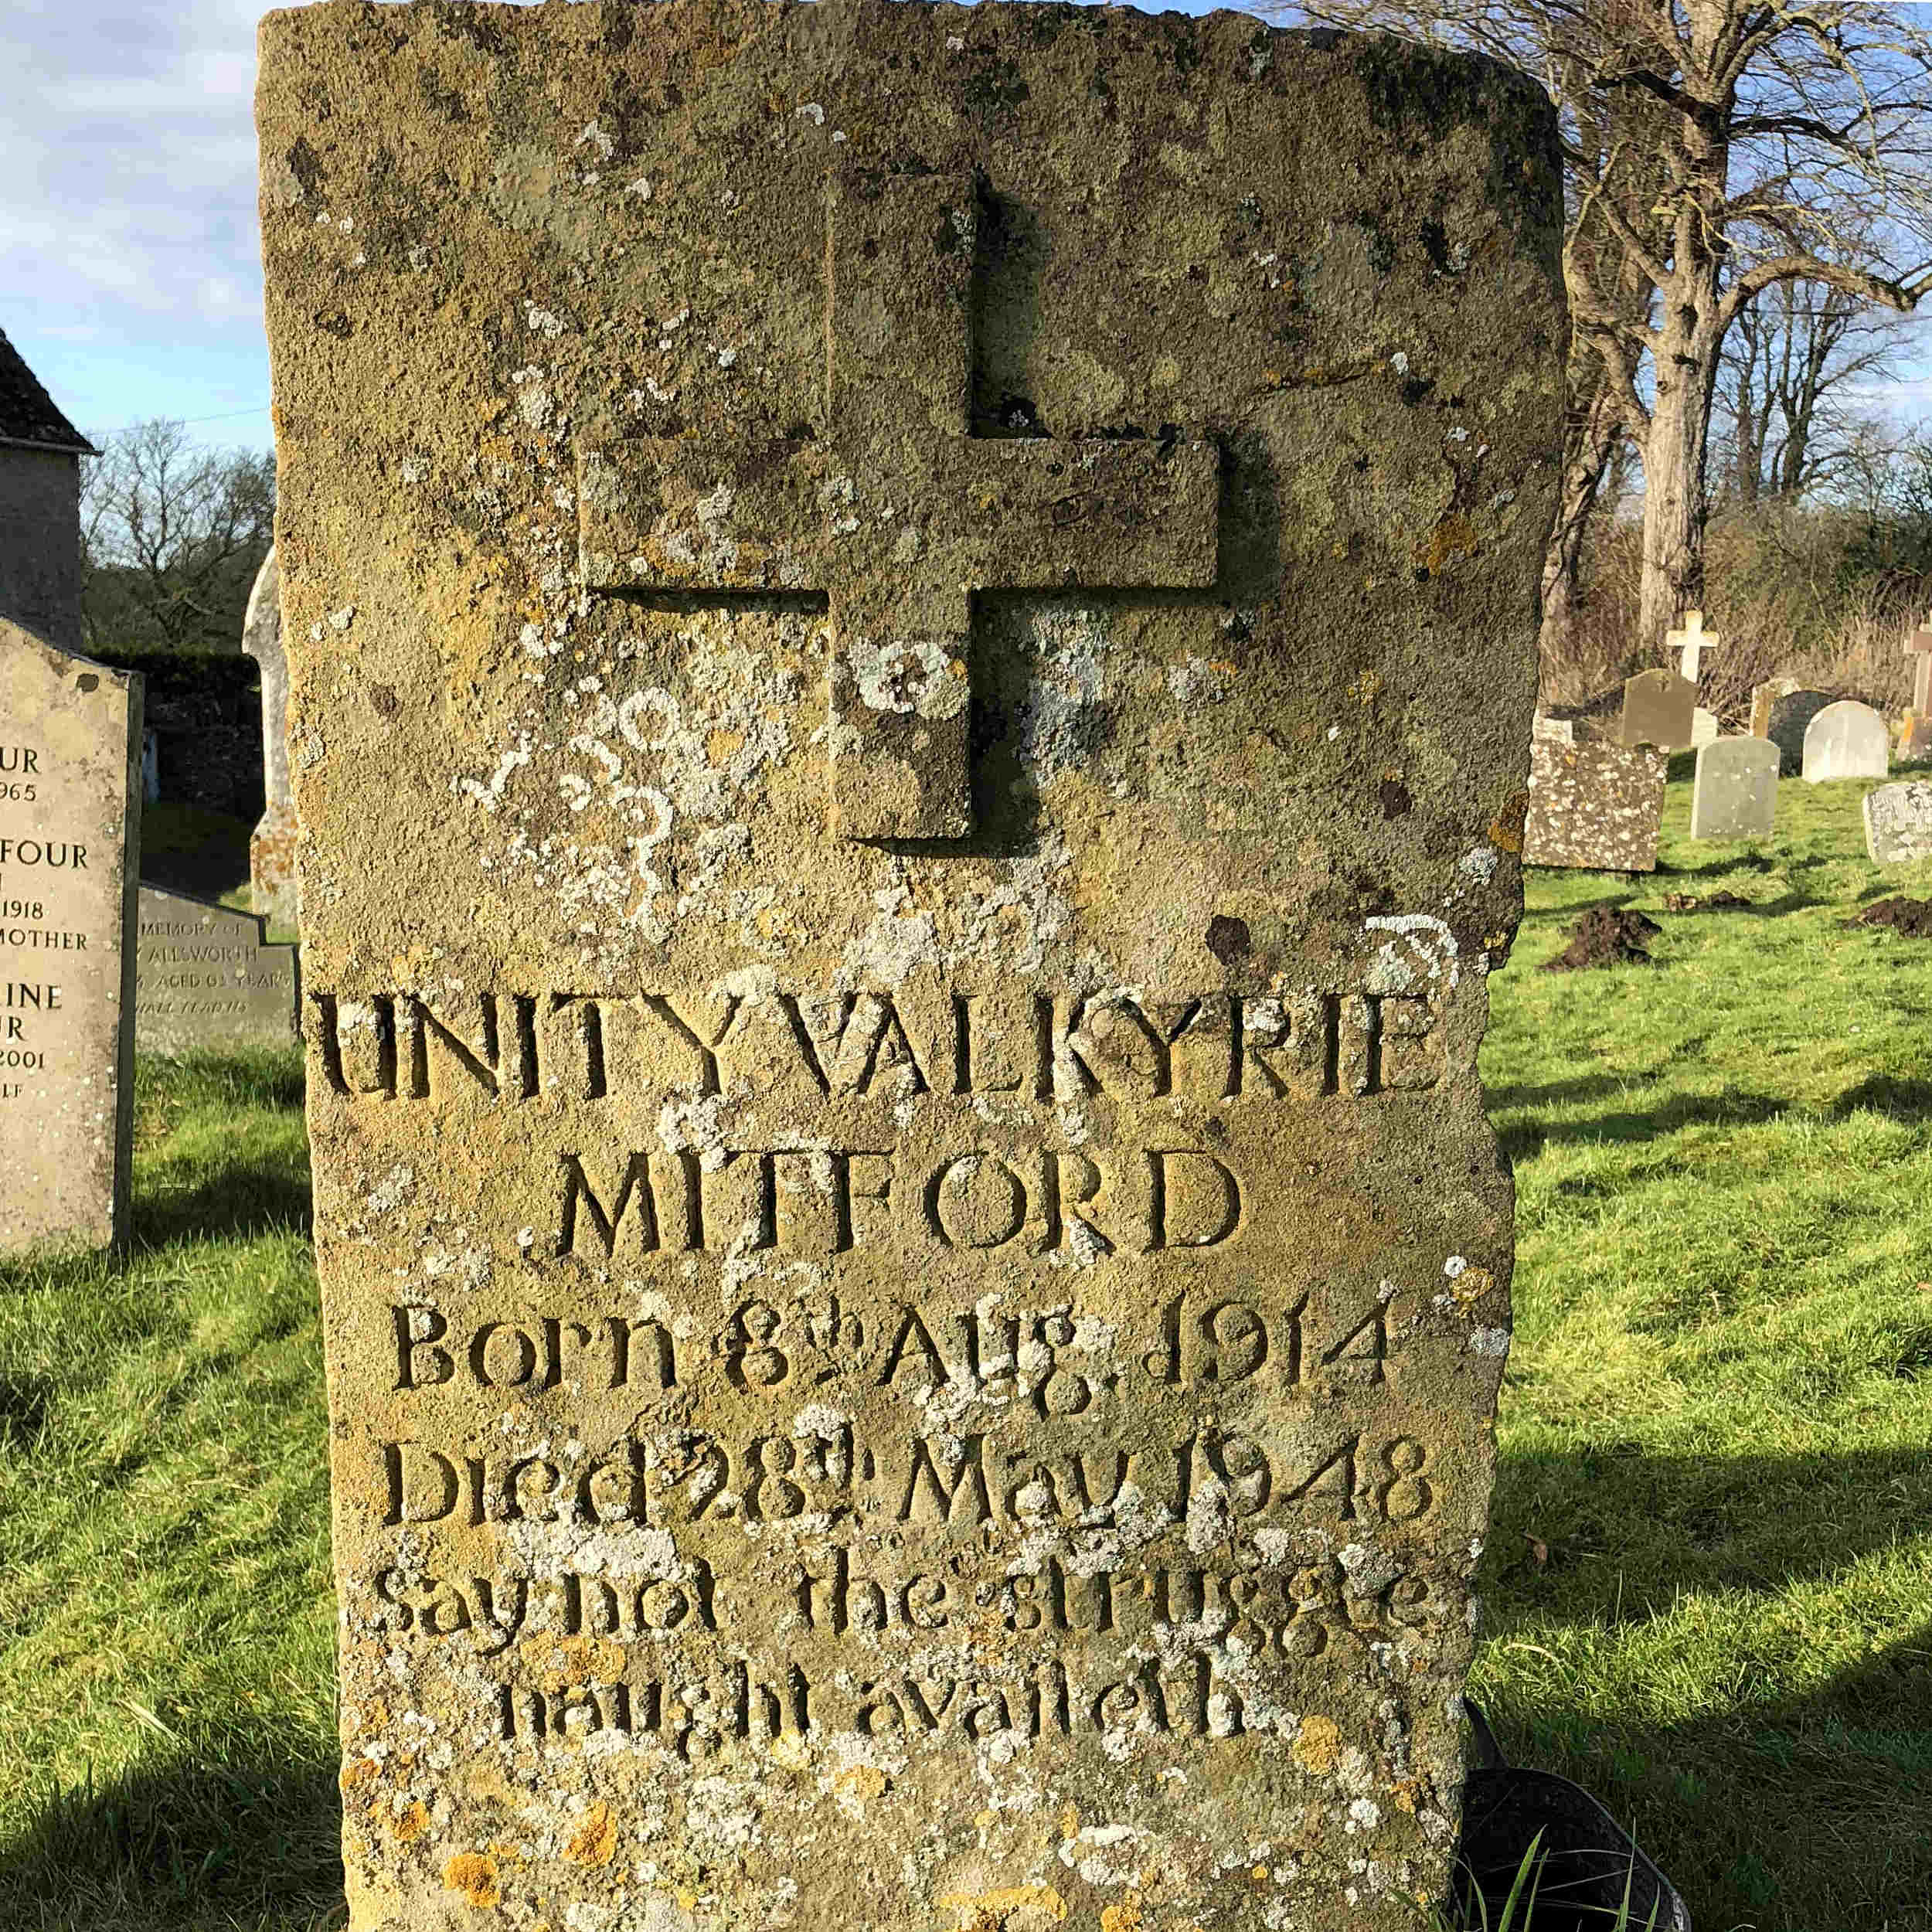 Unity Mitfords Grave - St Mary's Church, Swinbrook